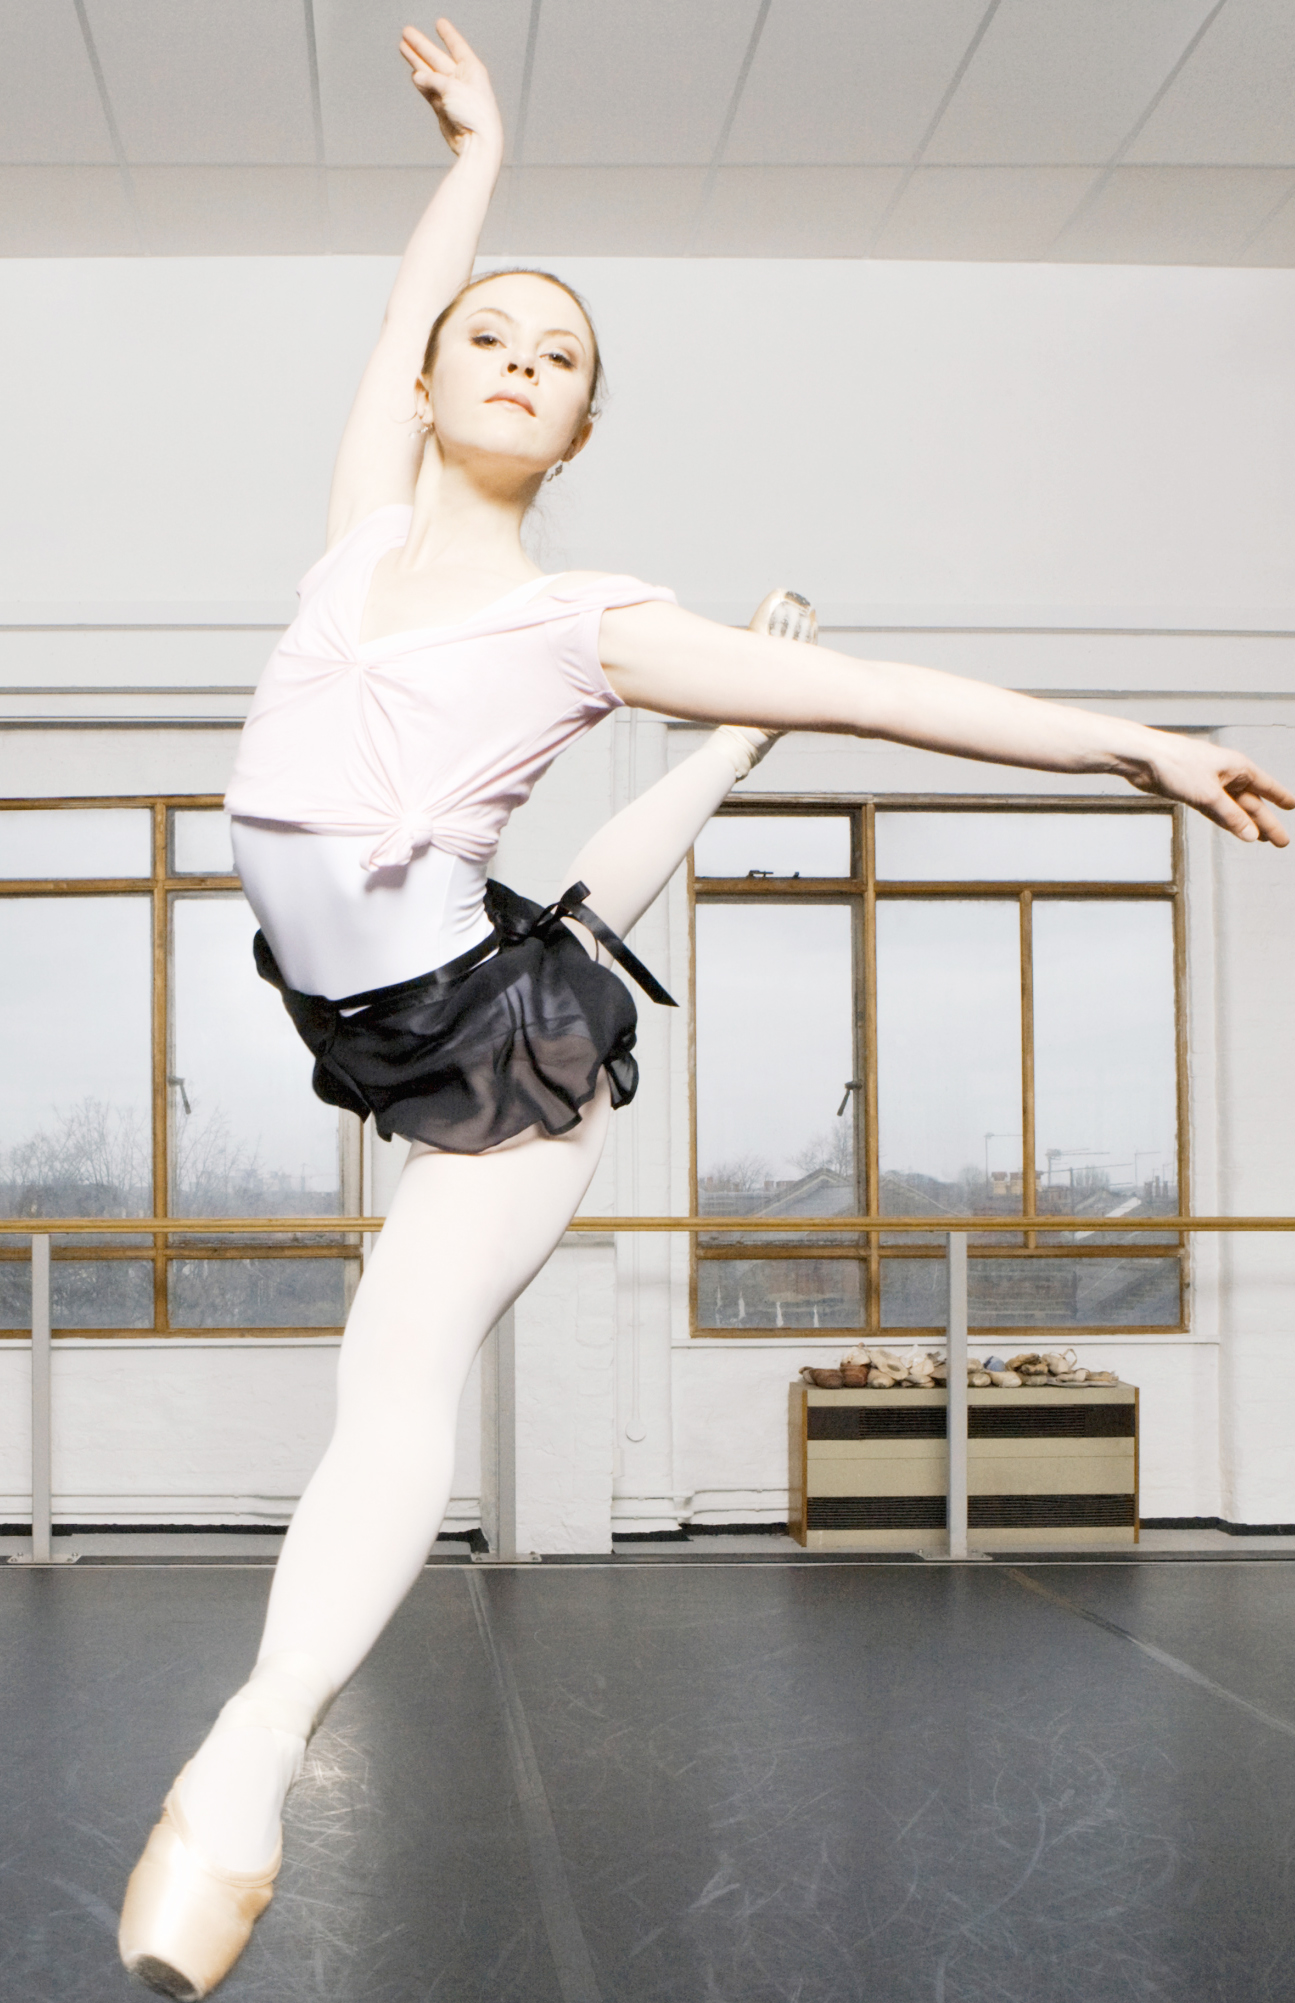 the art of ballet essay example Open document below is an essay on ballet from anti essays, your source for research papers, essays, and term paper examples.